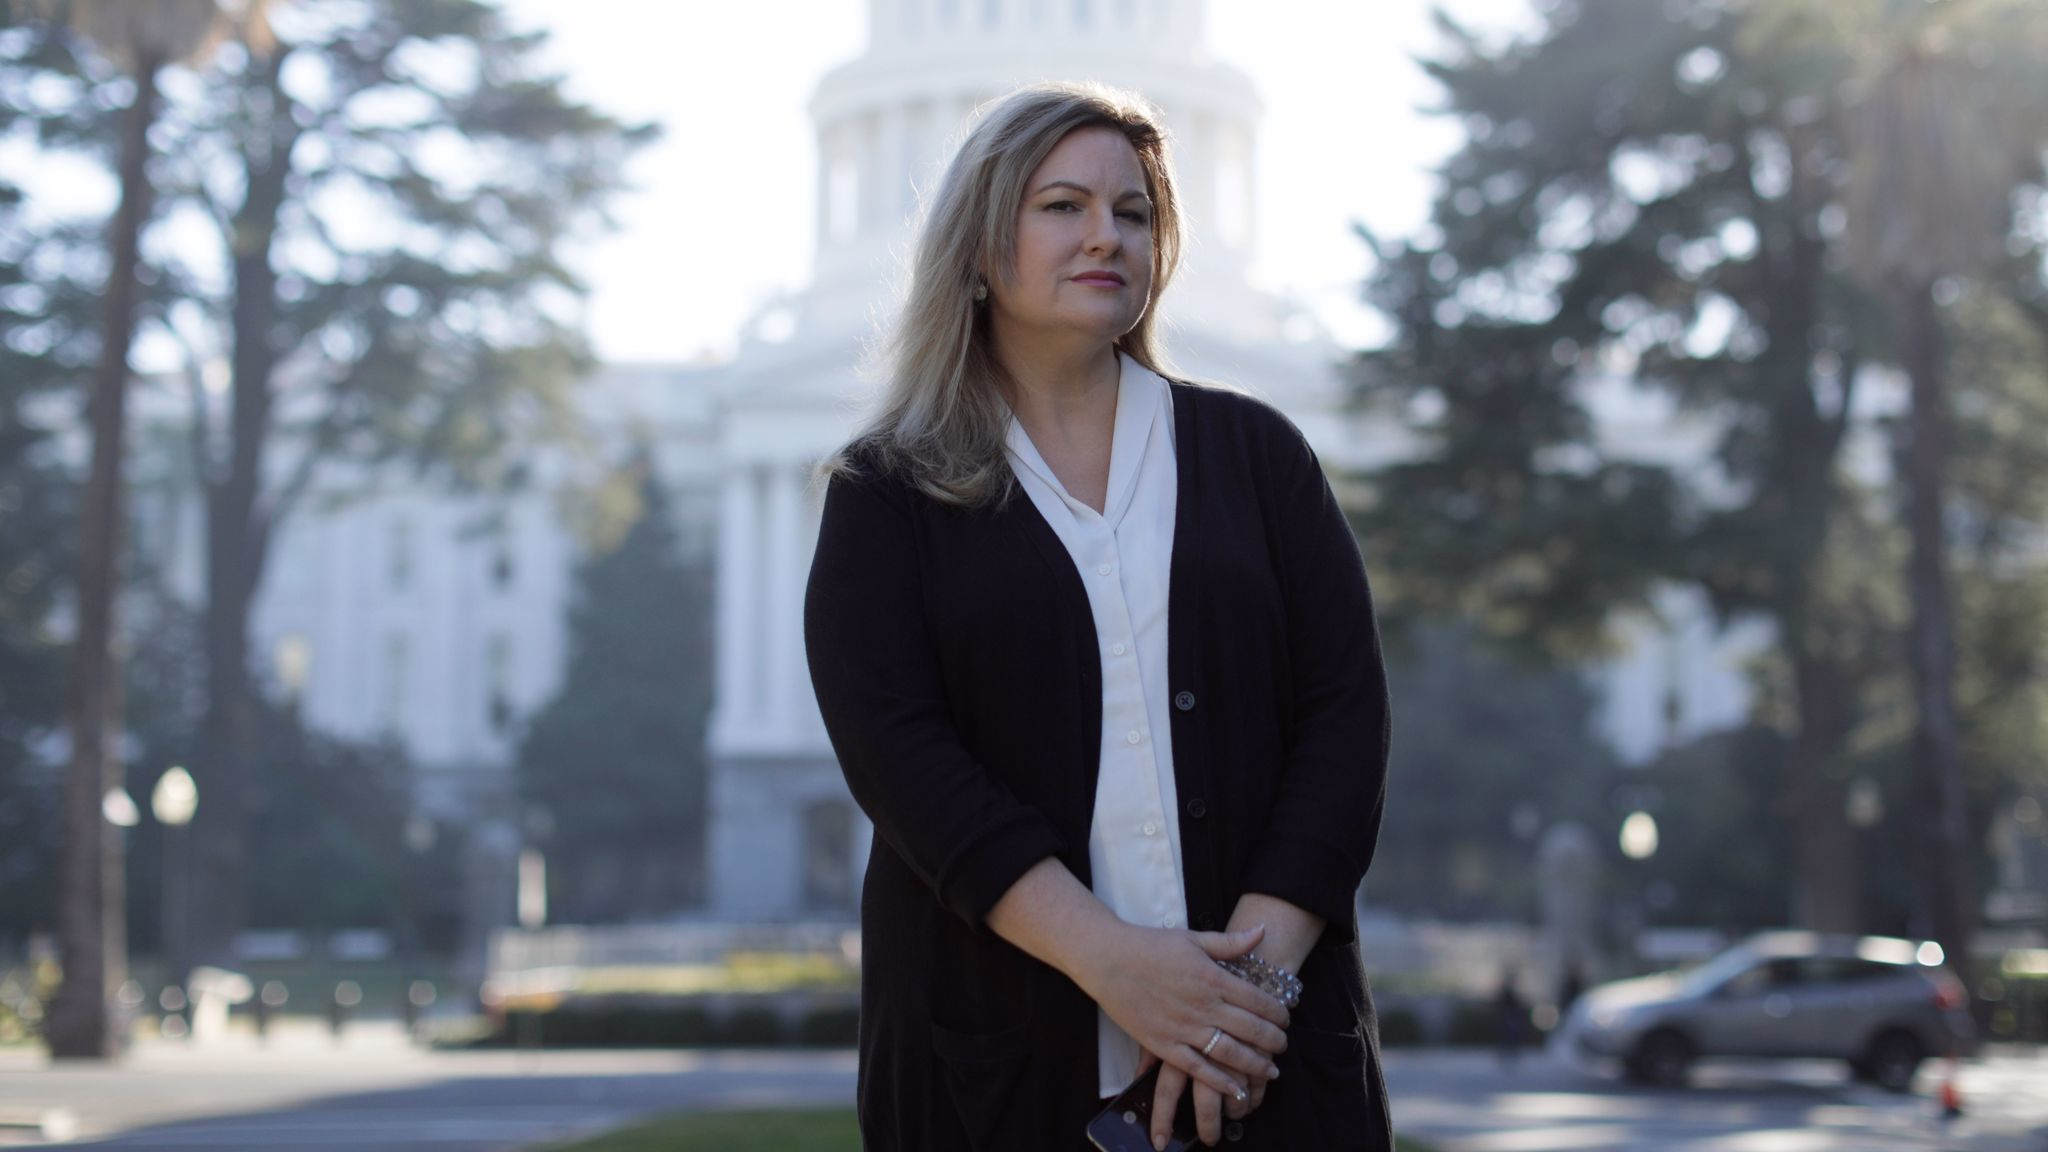 Gyore spoke publicly for the first time about a 2009 complaint she filed against Bocanegra. (Myung J. Chun / Los Angeles Times)